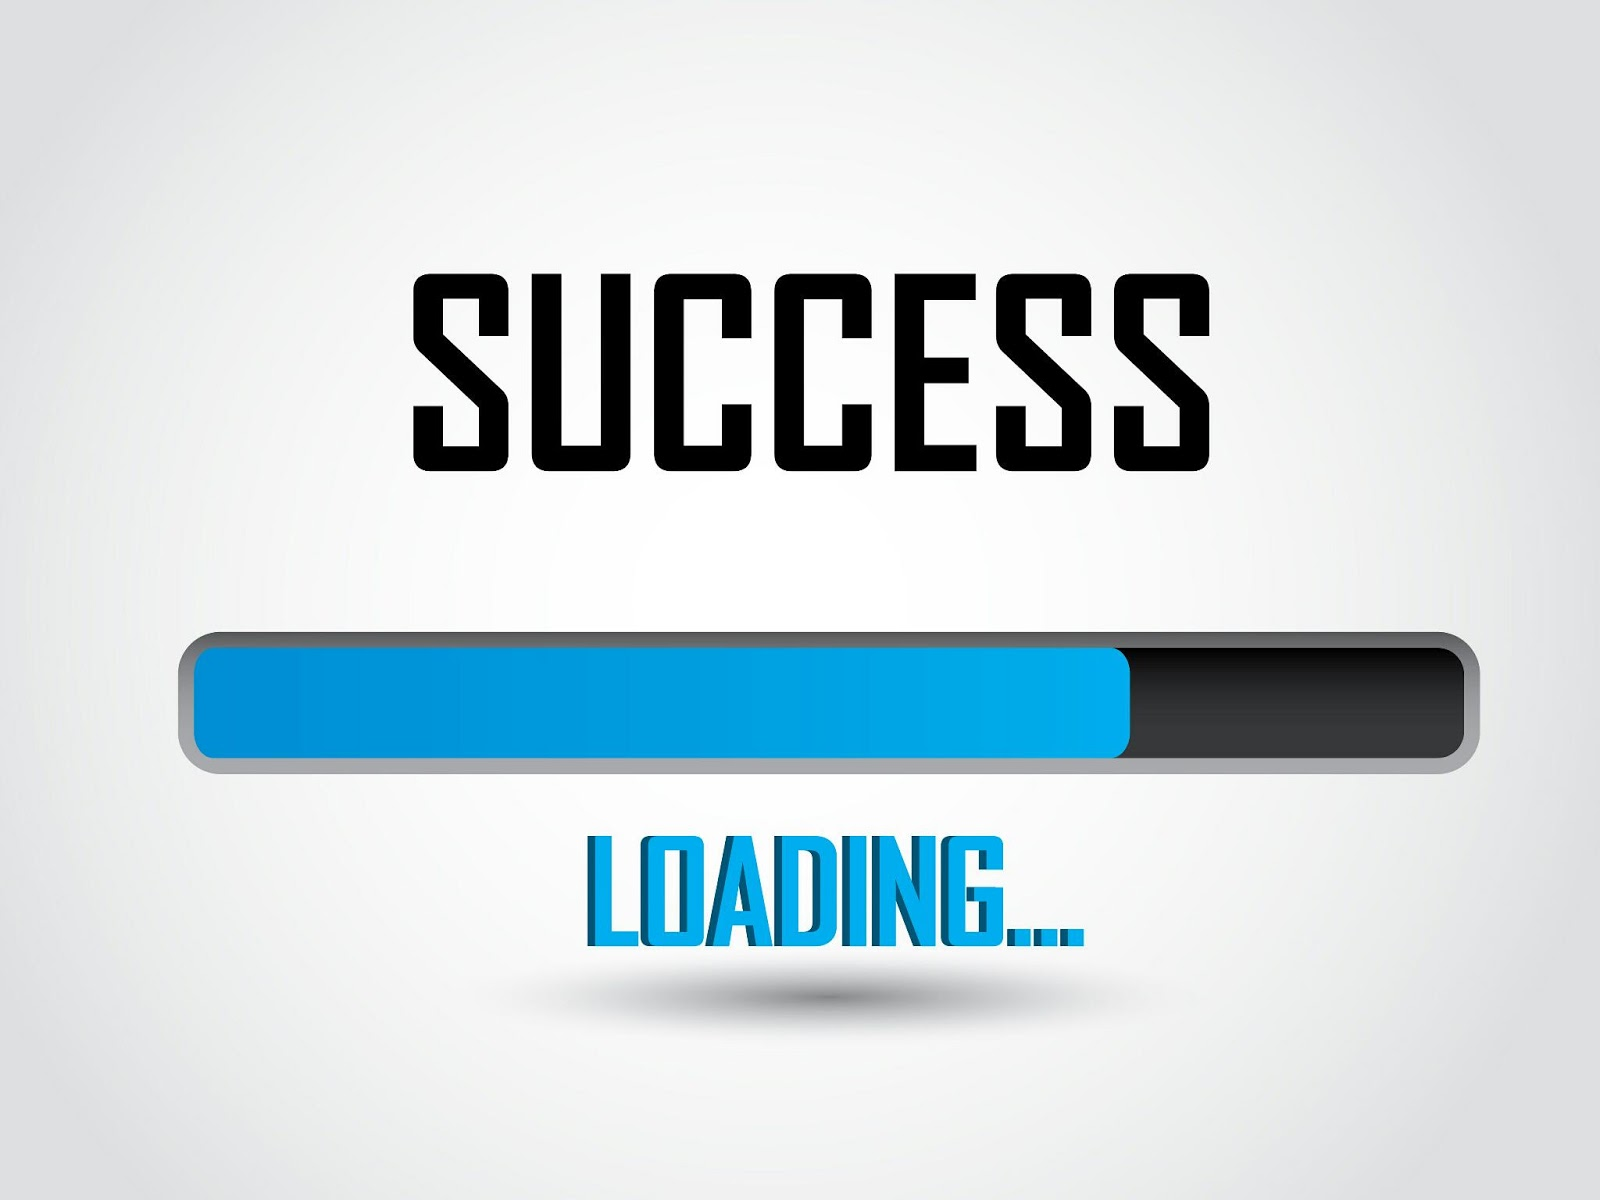 things to stop if one wants to be successful galaxy tz despite this there are definitely hindrances to success these drawbacks are ubiquitous in their ability to deter your success but don t fret because if